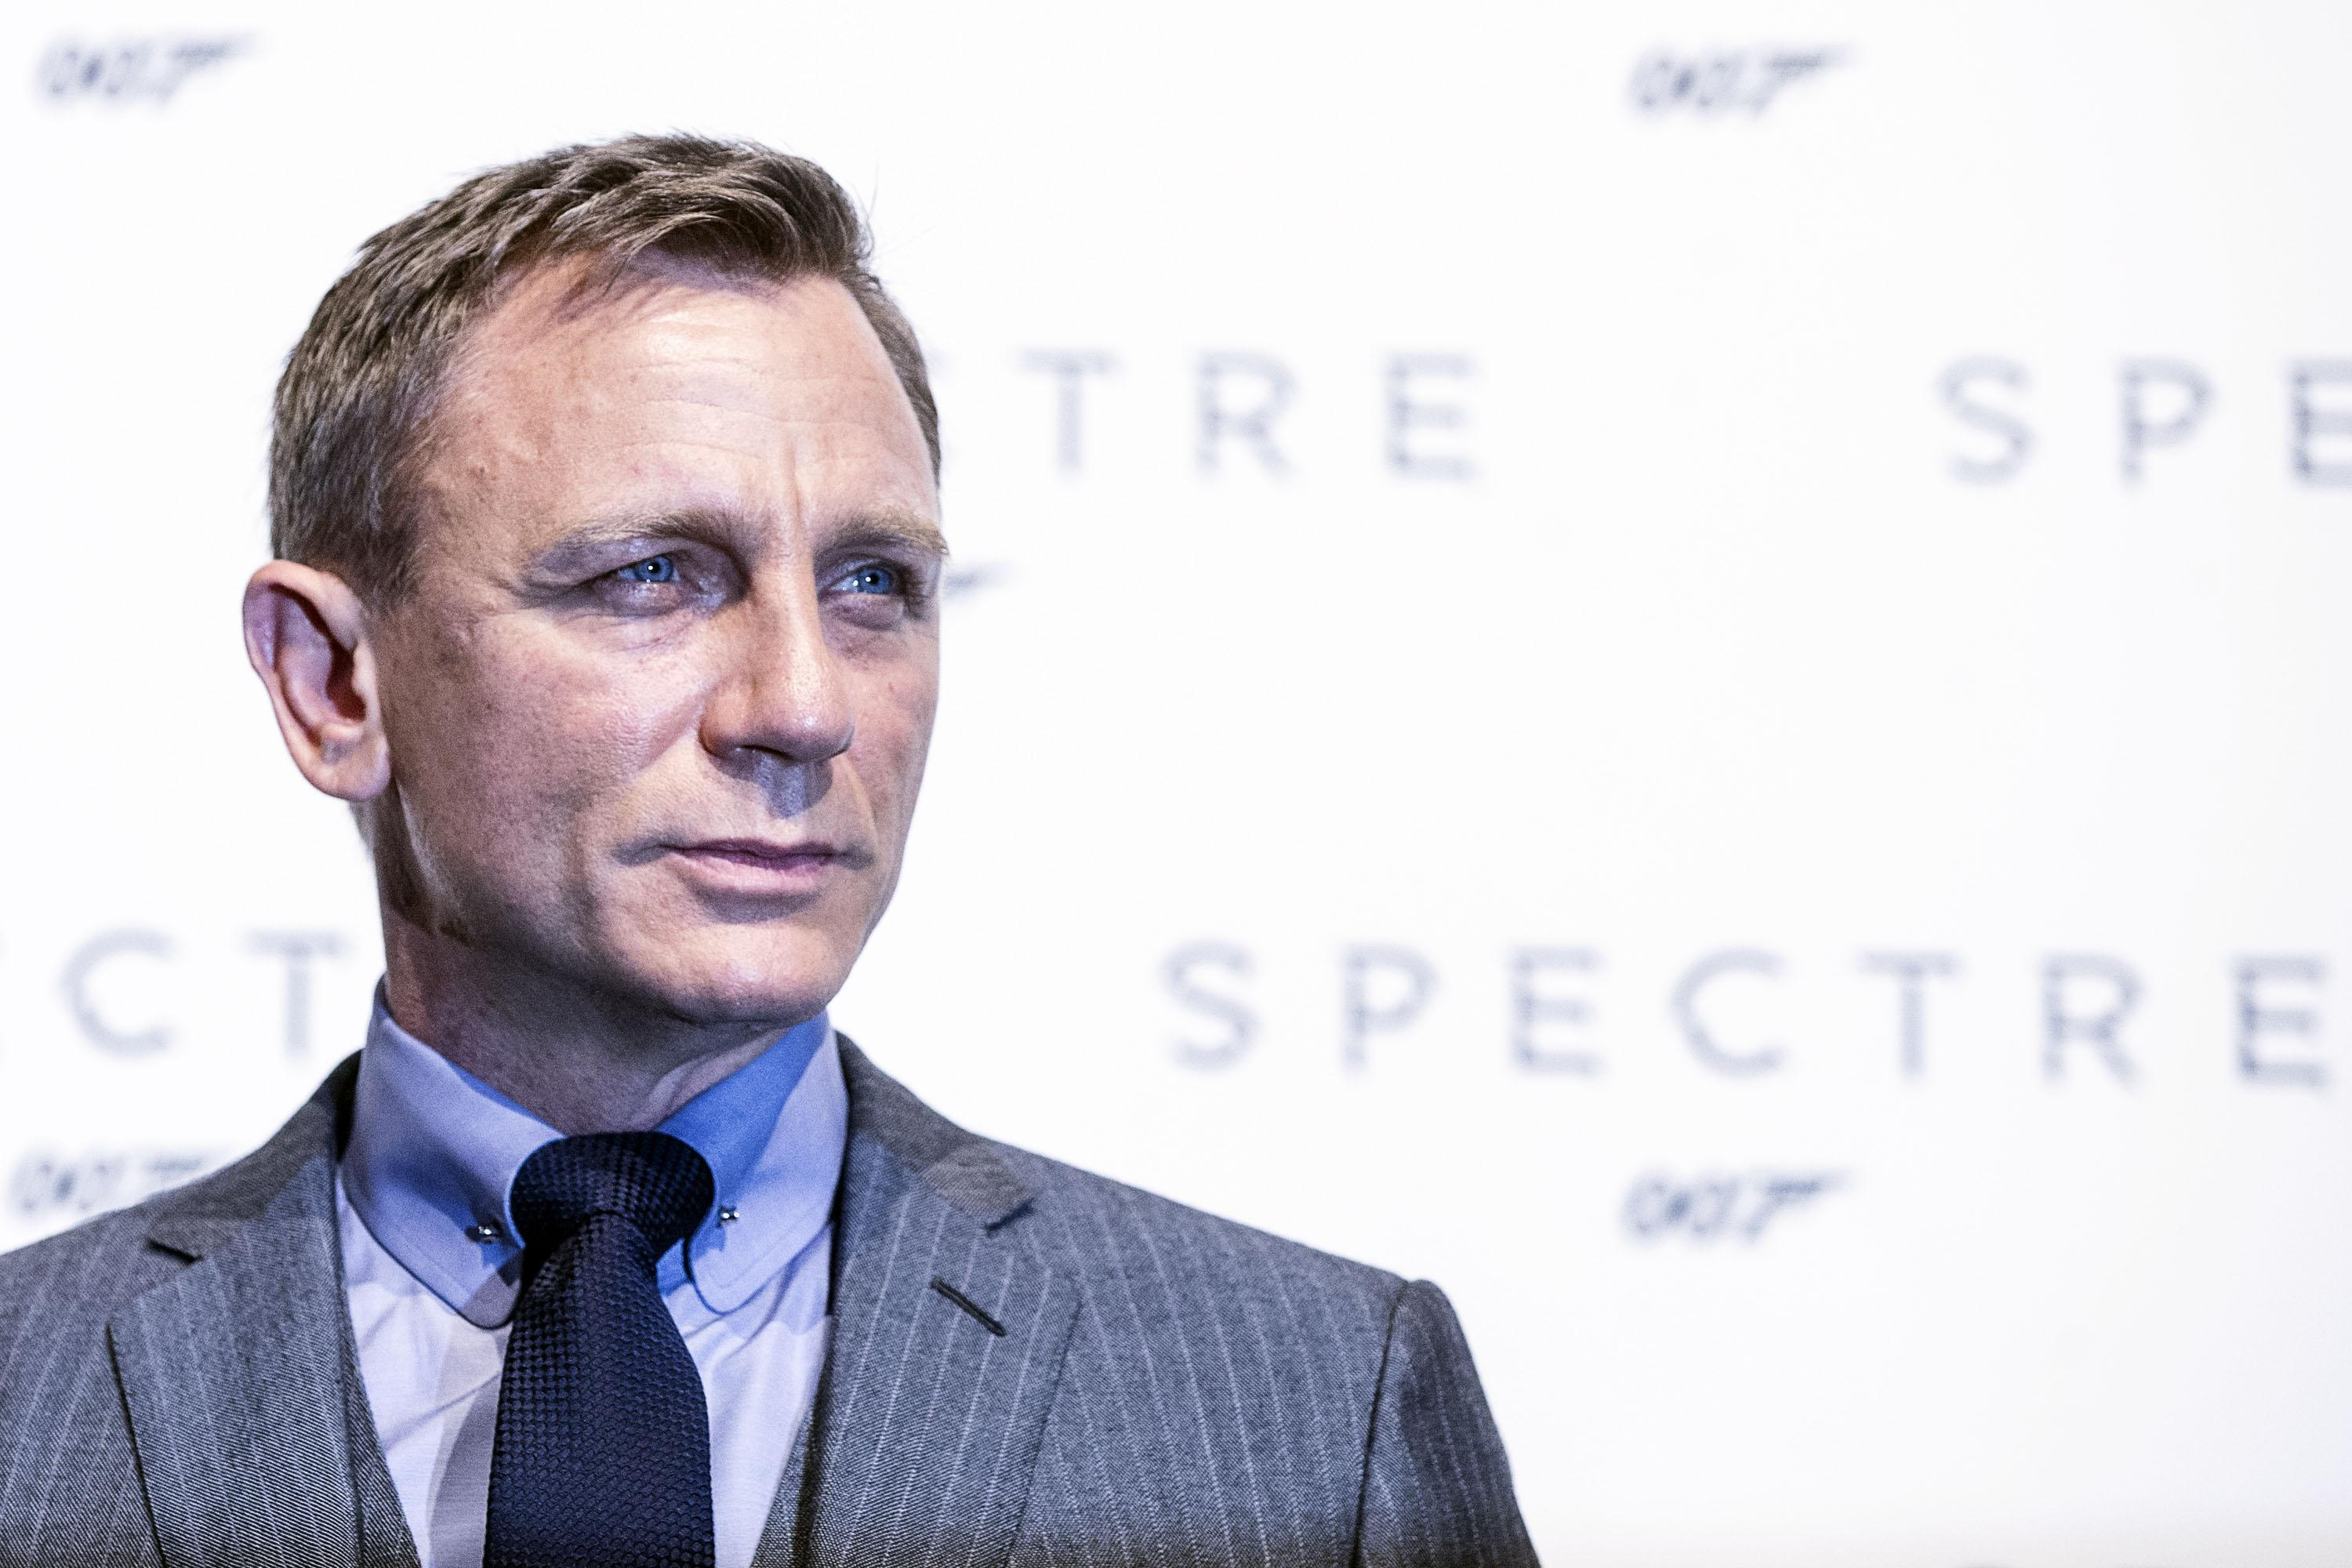 The UK's Secret Intelligence Service, MI6, is to recruit 1000 more spies by 2020. (File photo of Daniel Craig at a press event for James Bond film Spectre).